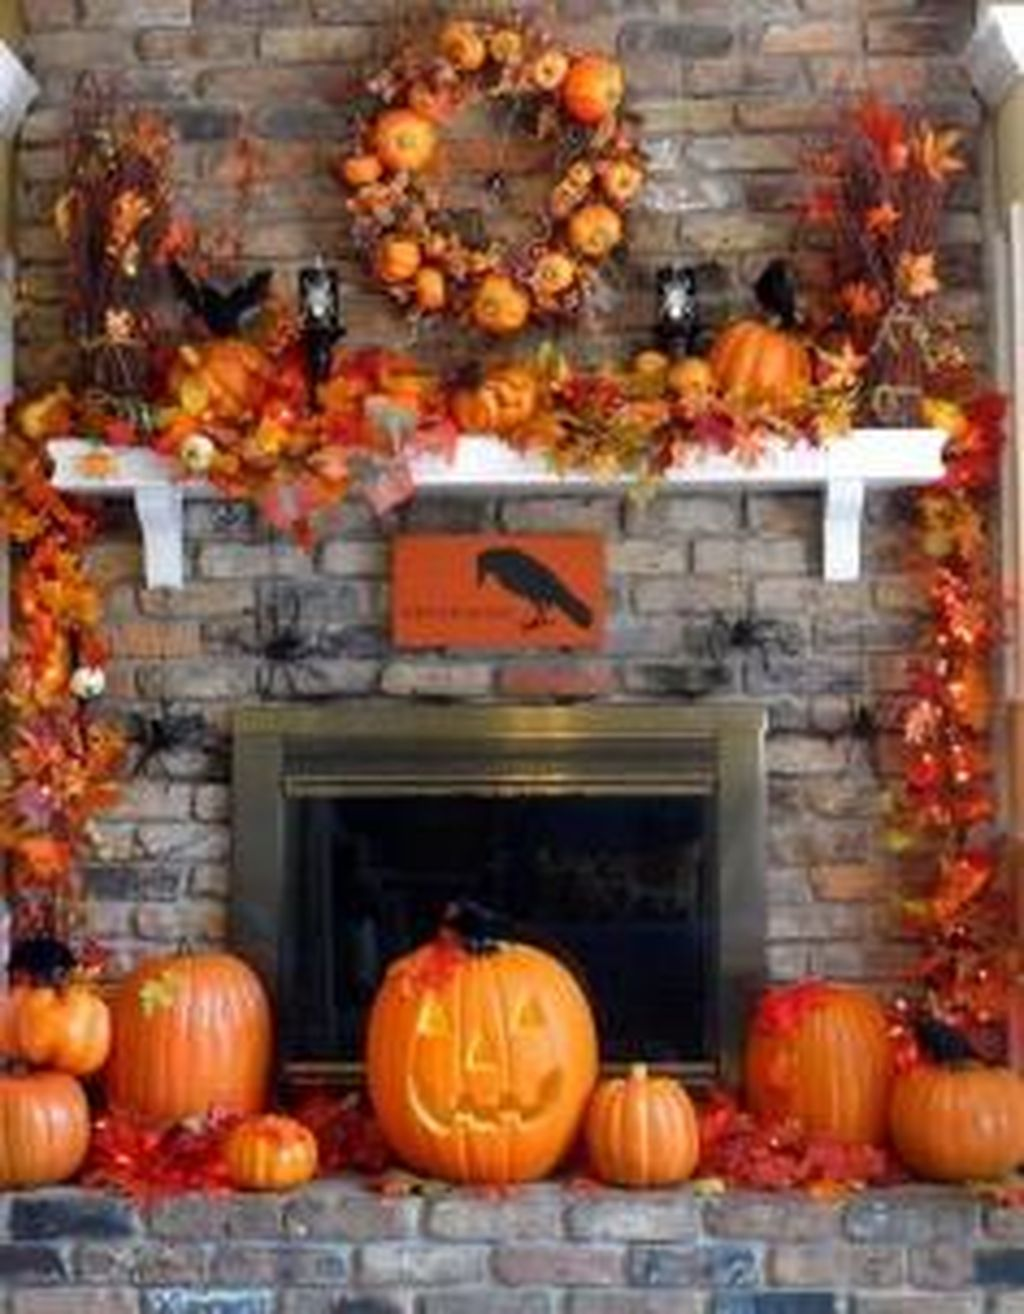 Scary But Classy Halloween Fireplace Decoration Ideas 13